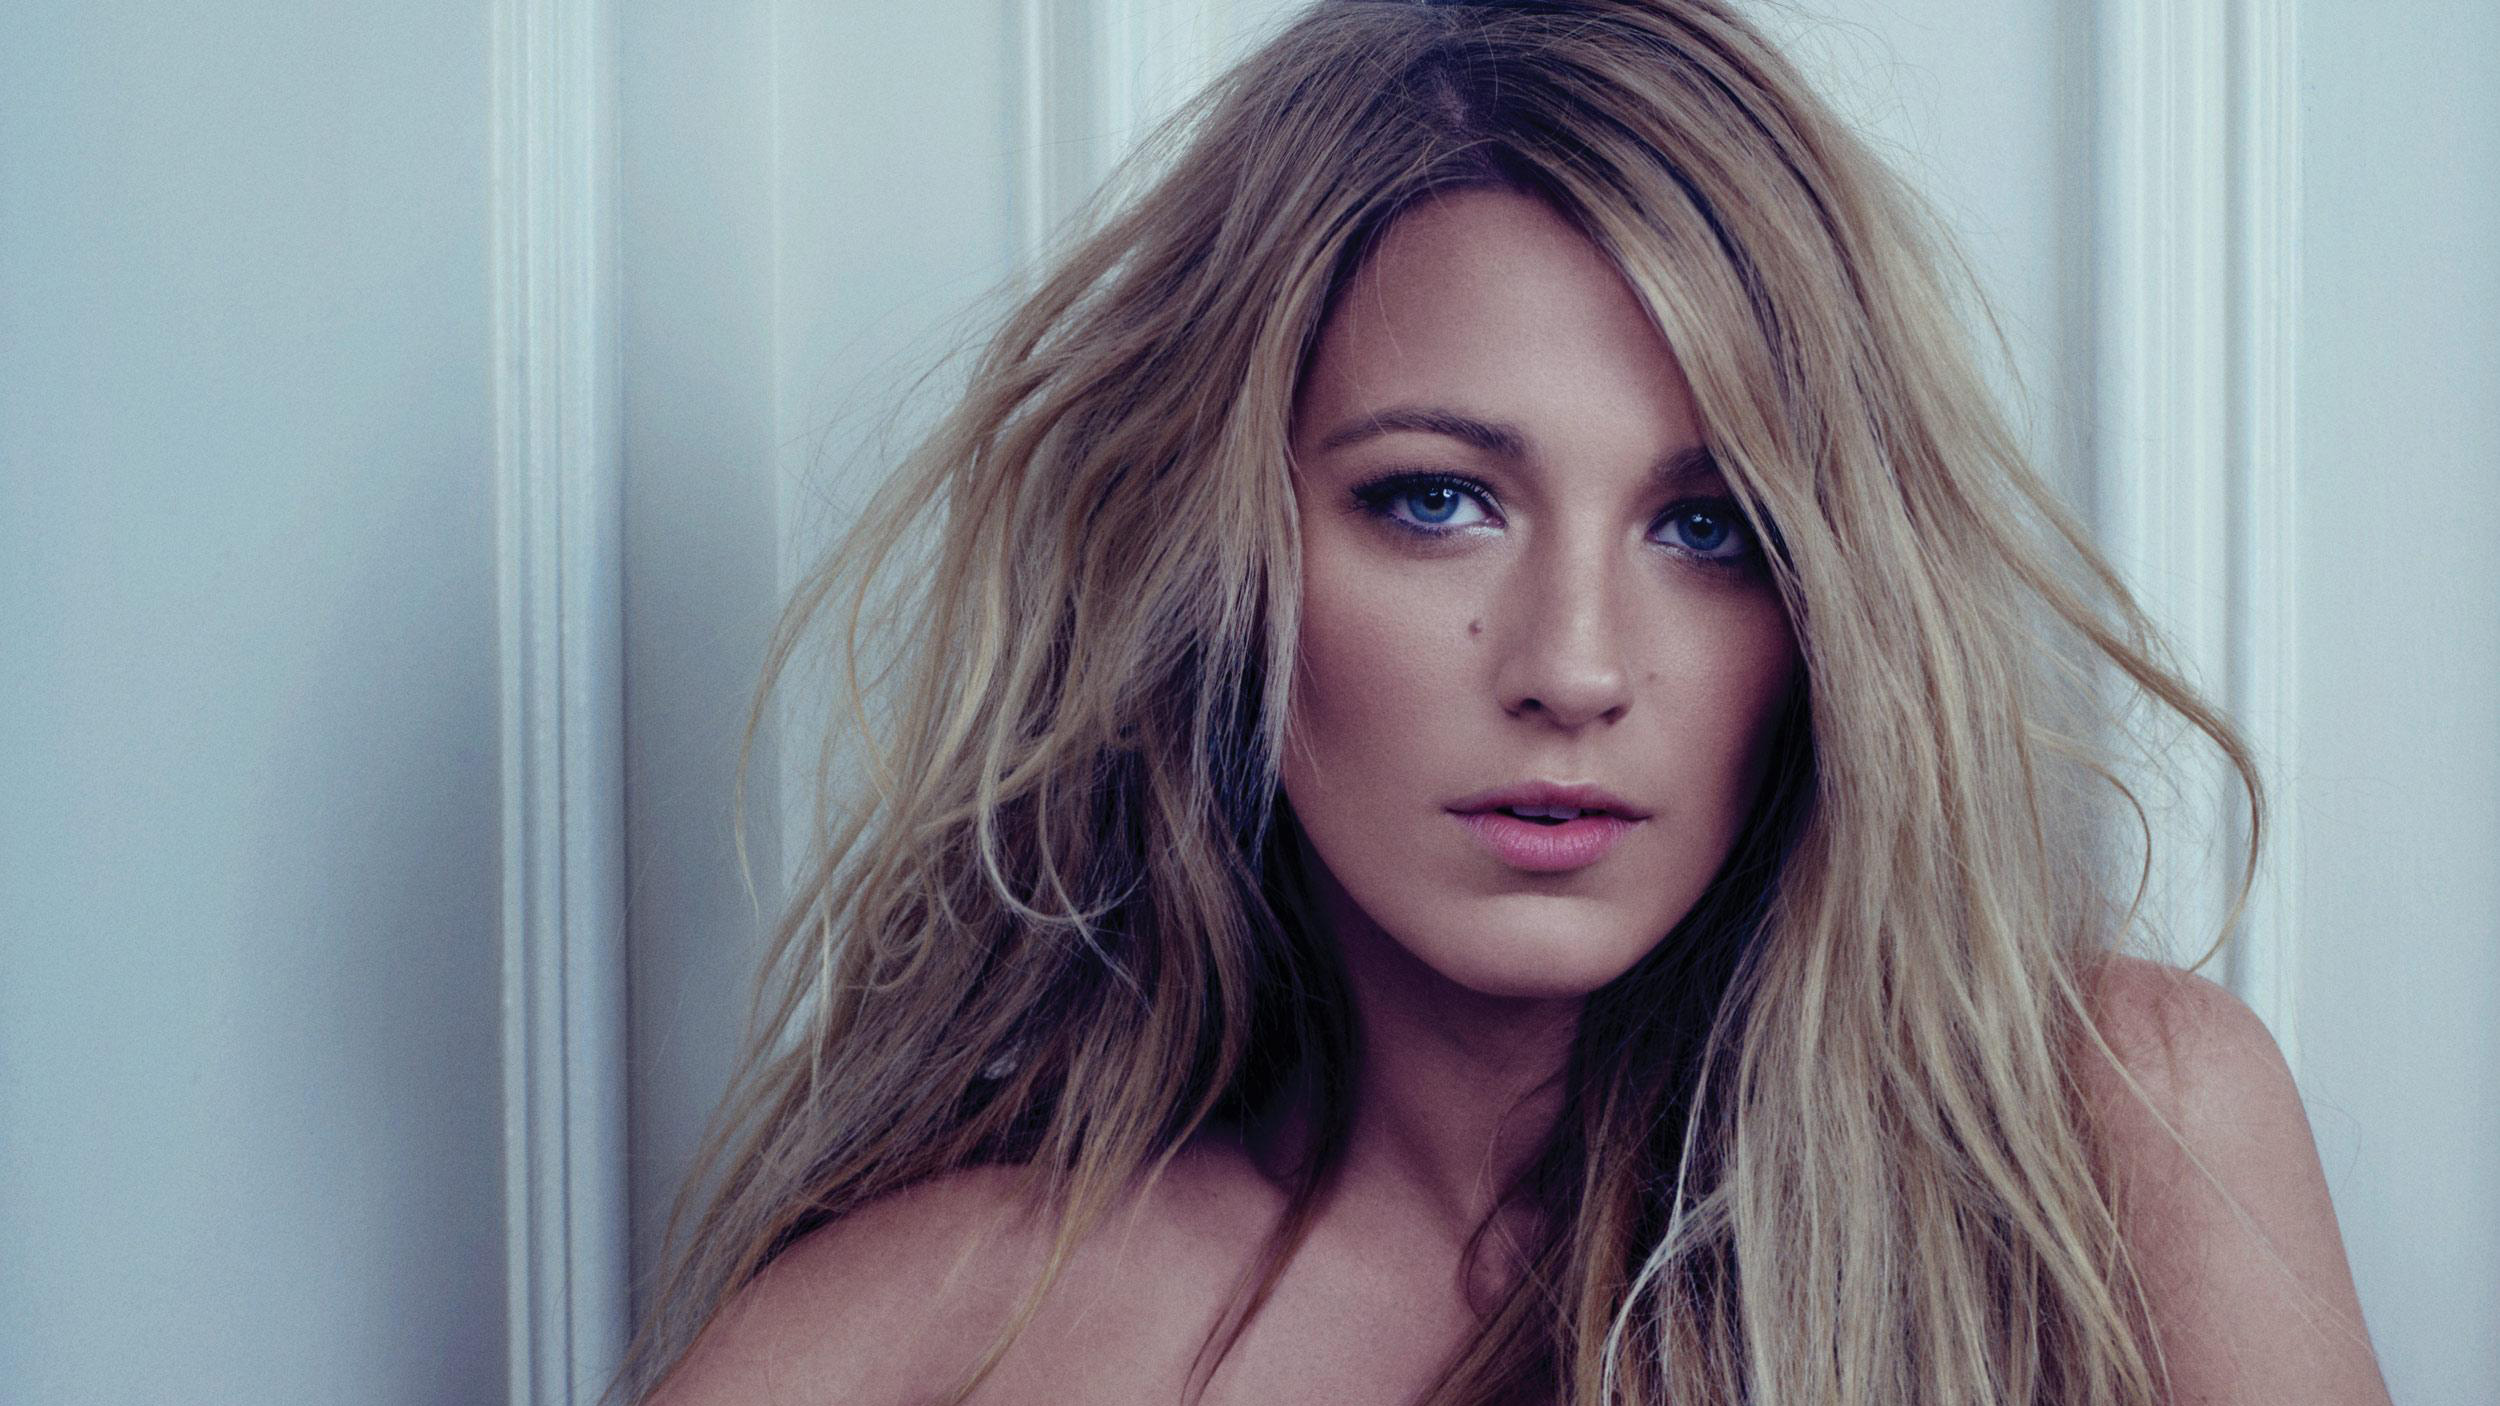 blake lively 2018, hd celebrities, 4k wallpapers, images